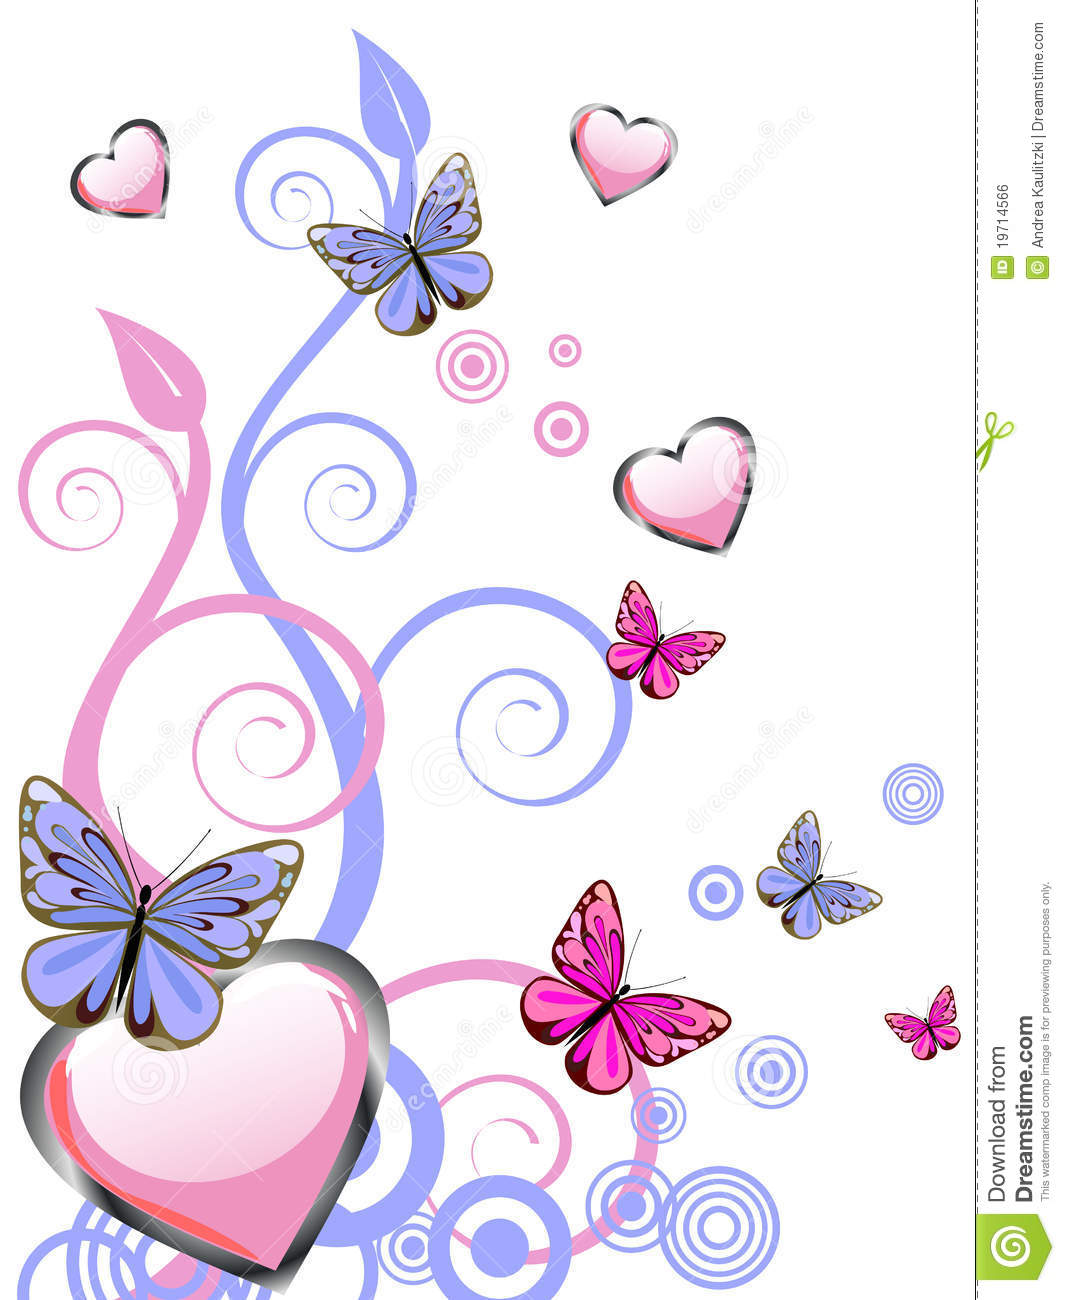 ... of pink hearts and colorful butterflies on a floral background